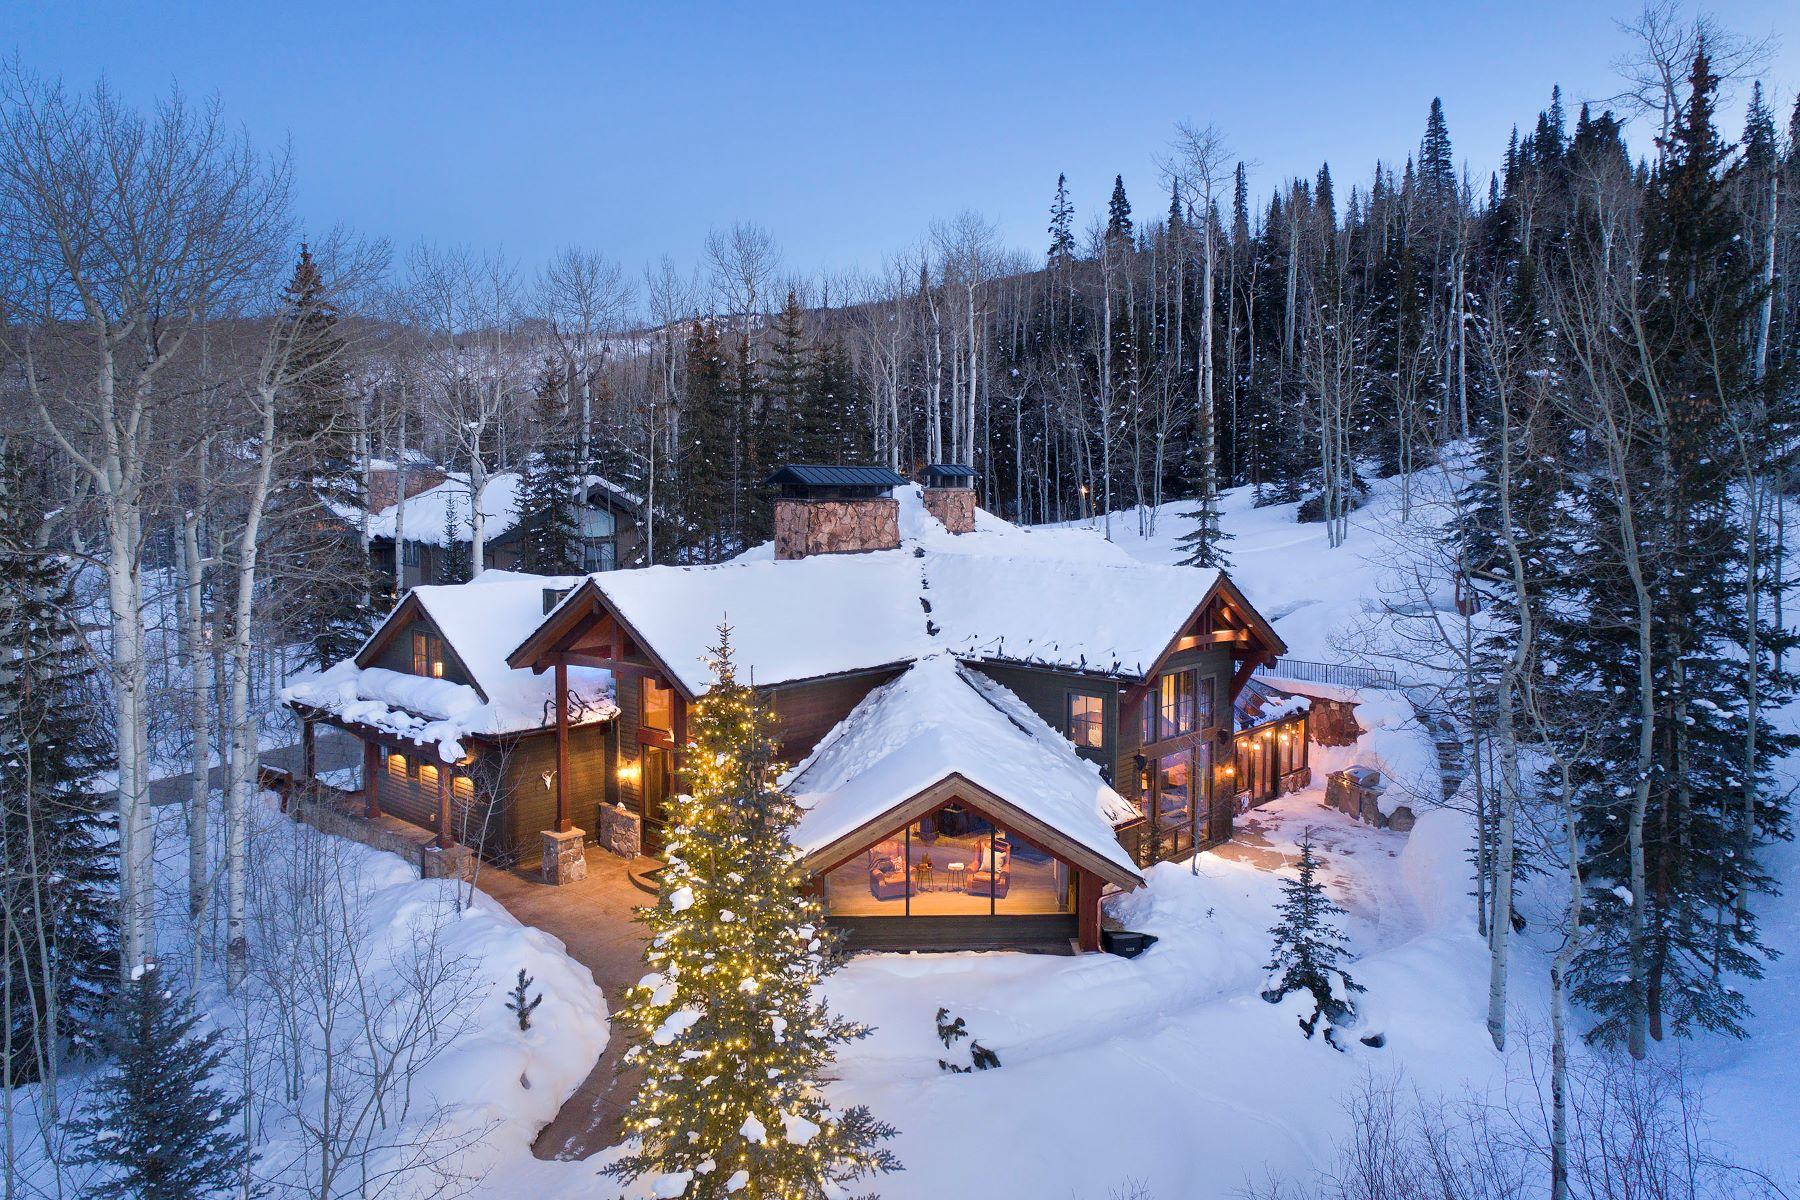 Single Family Homes for Sale at 1400 Wood Road Snowmass Village, Colorado 81615 United States